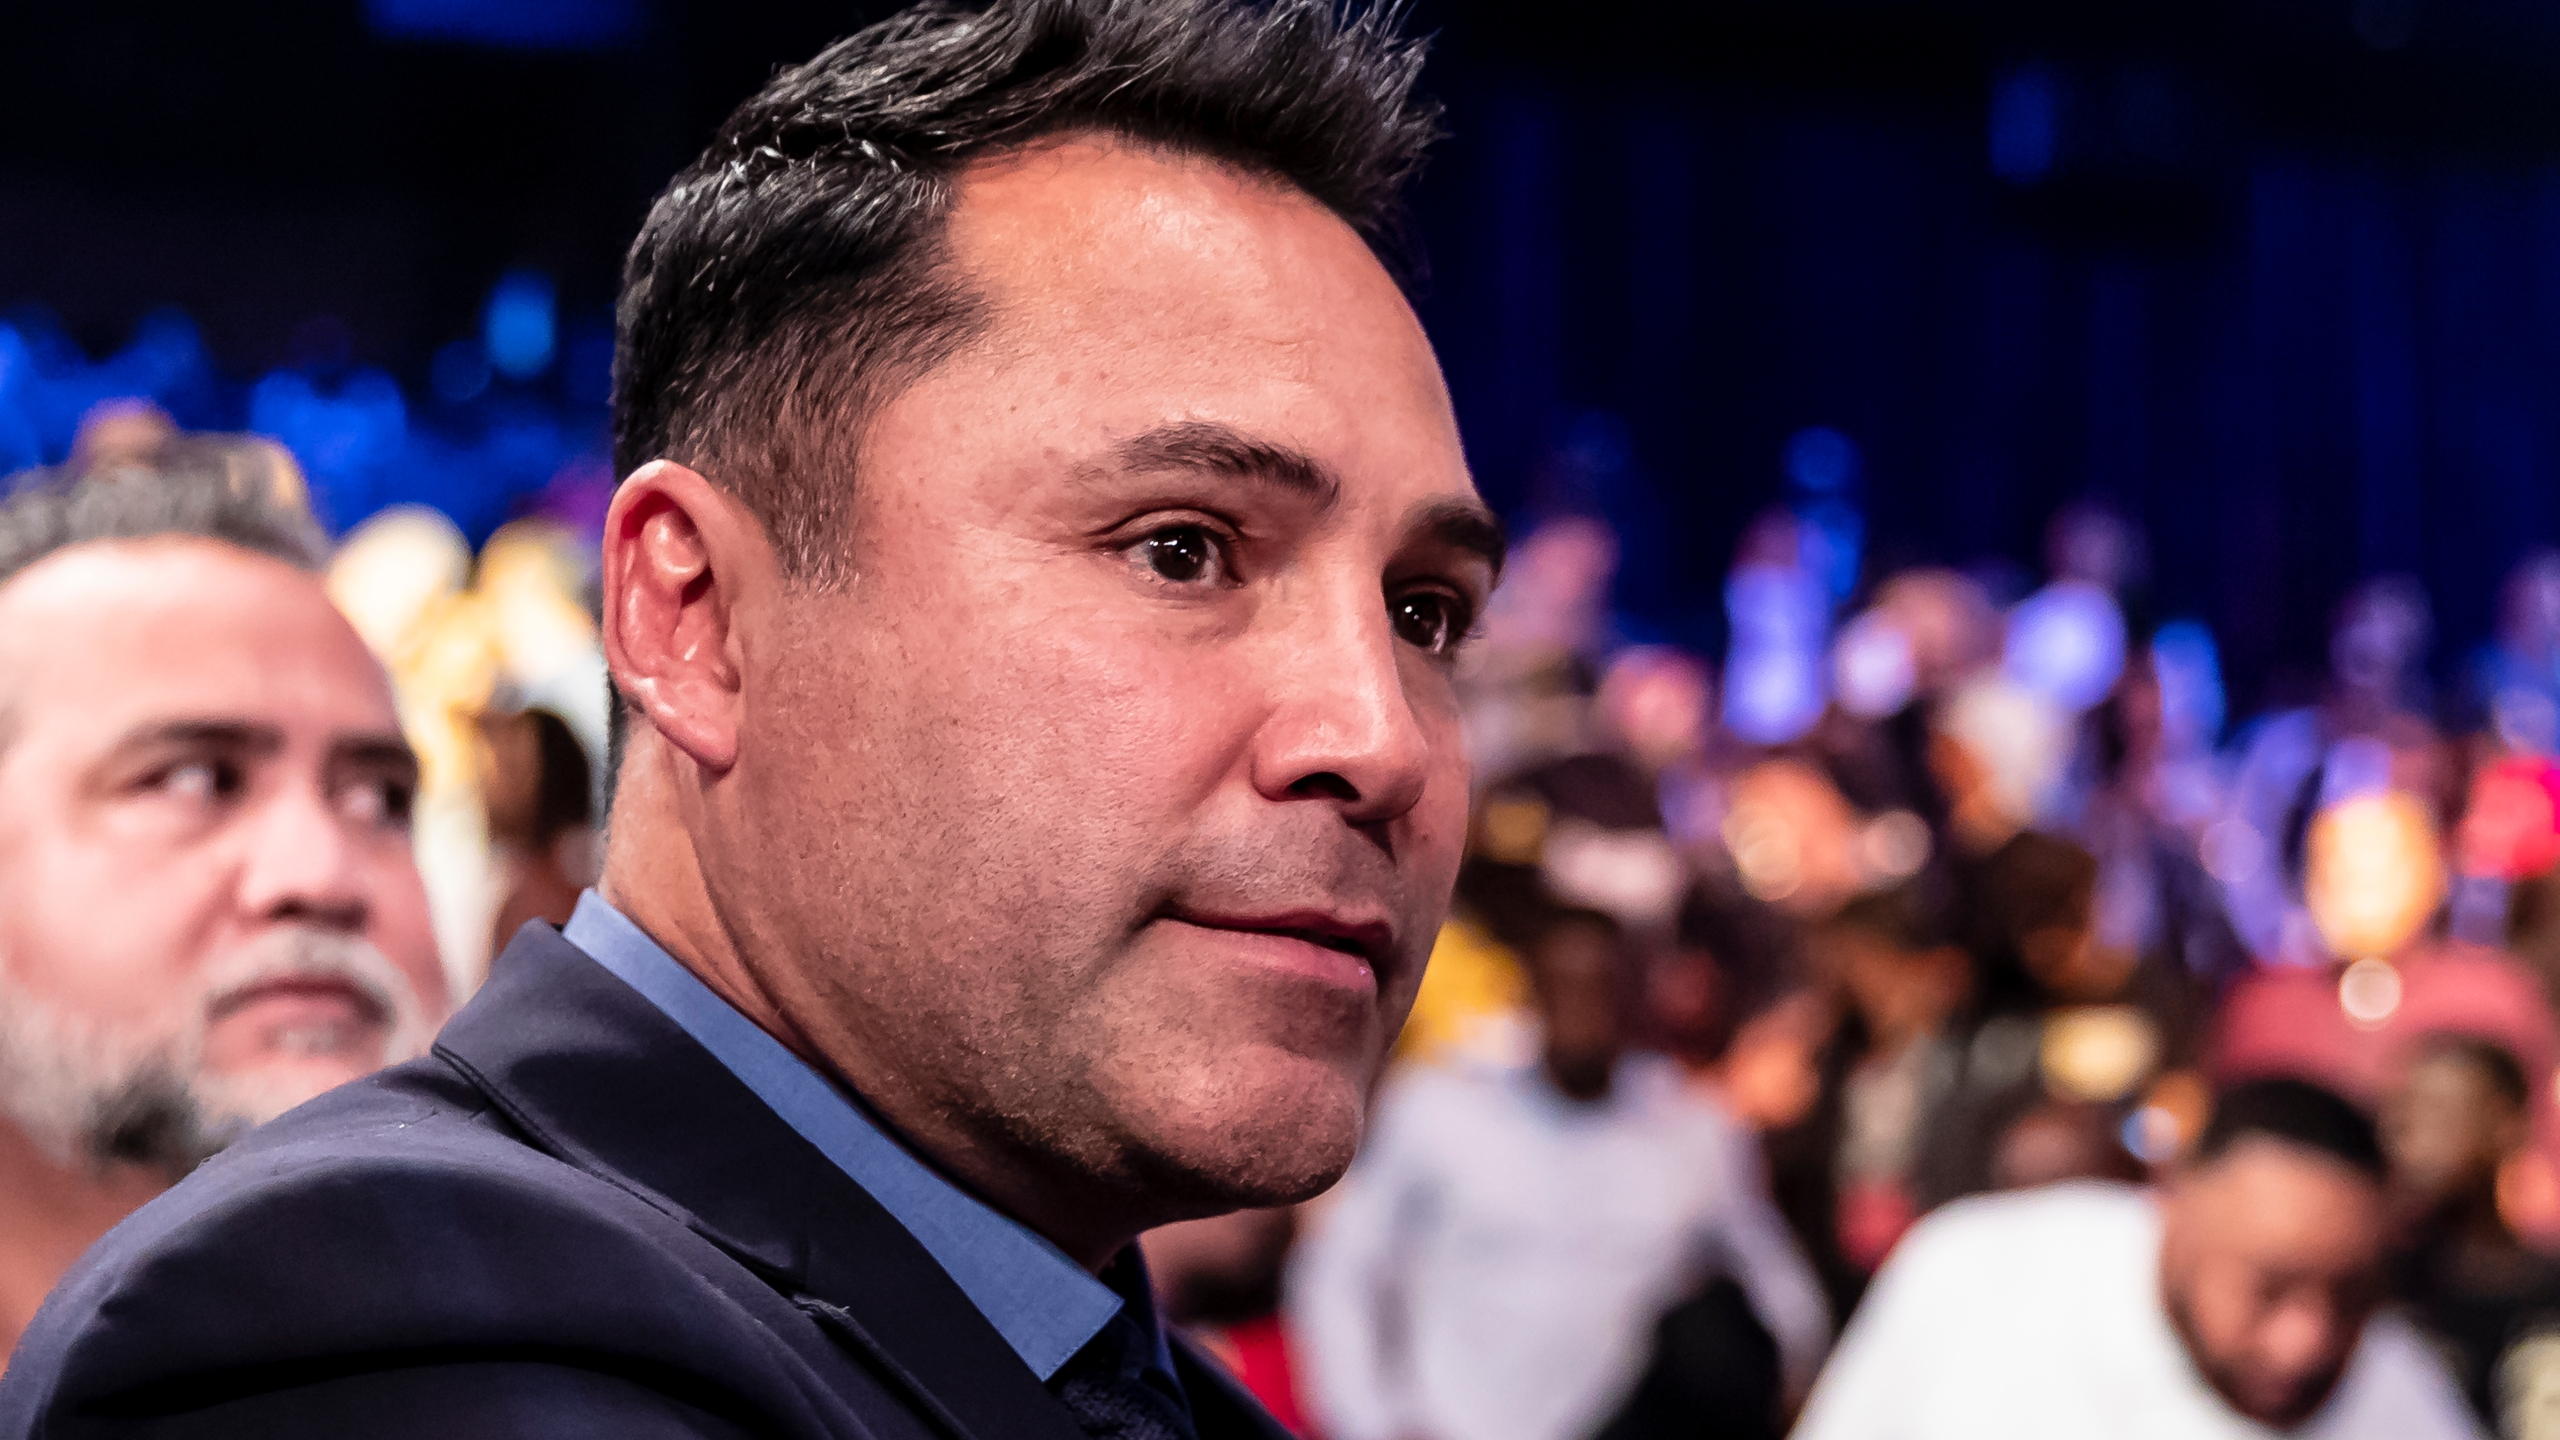 Oscar De La Hoya looks on after the WBC featherweight title bout between Gary Russell Jr. and Joseph Diaz Jr. on May 19, 2018, in Oxon Hill, Maryland. (Credit: Scott Taetsch / Getty Images)